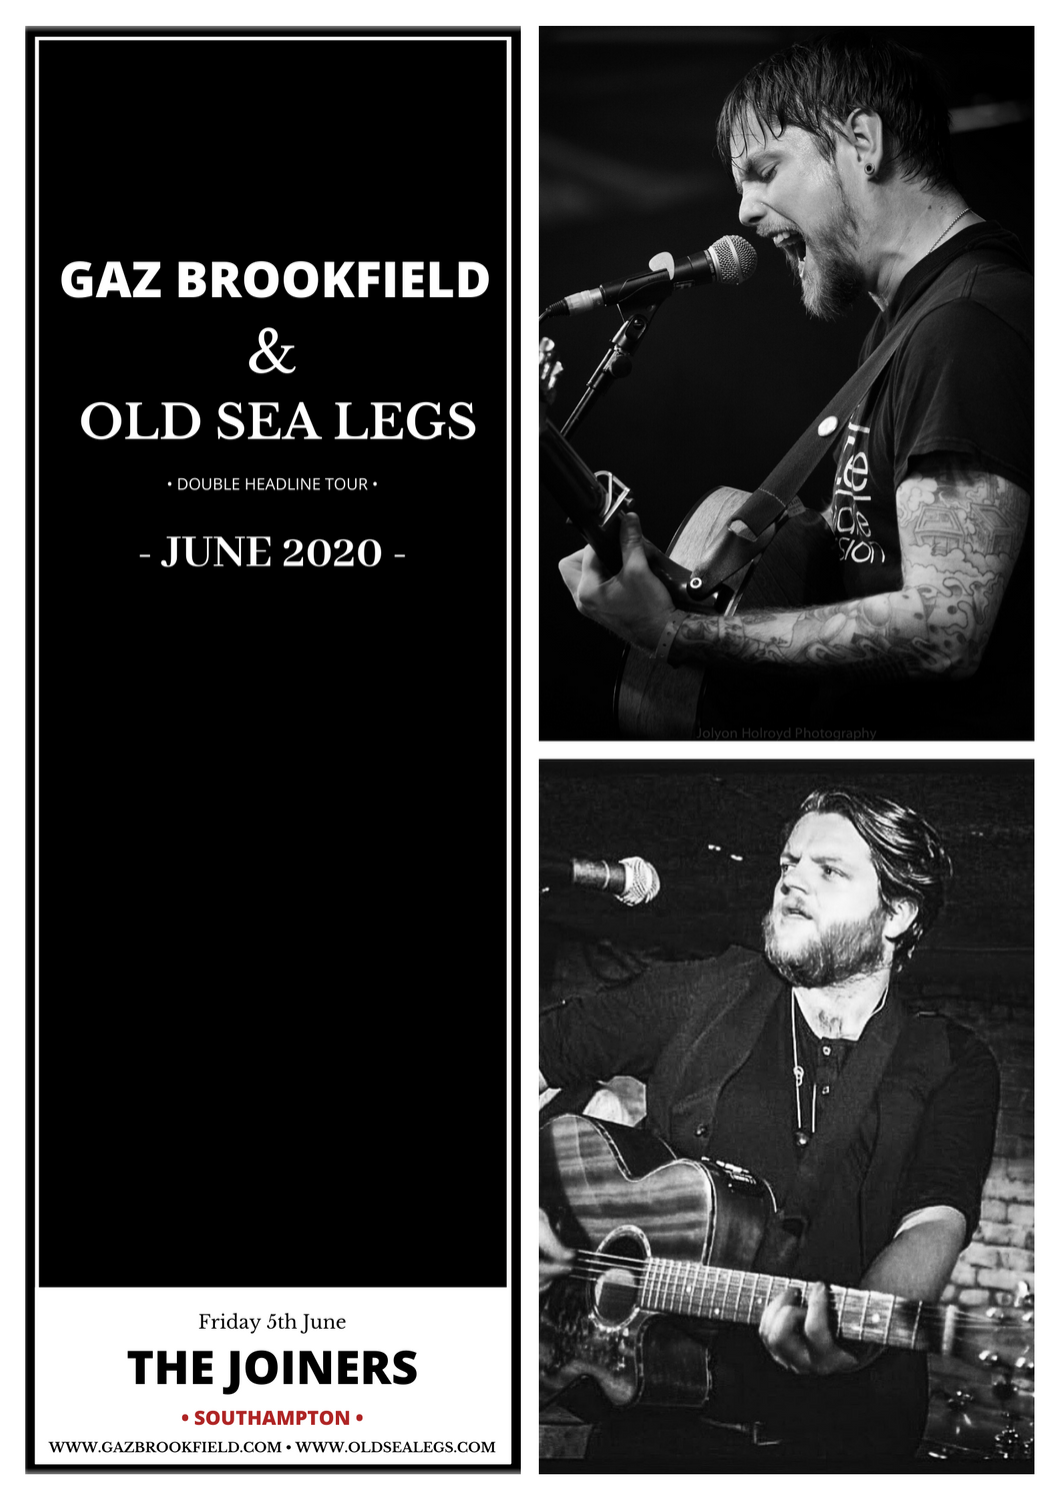 GAZ BROOKFIELD + OLD SEA LEGS